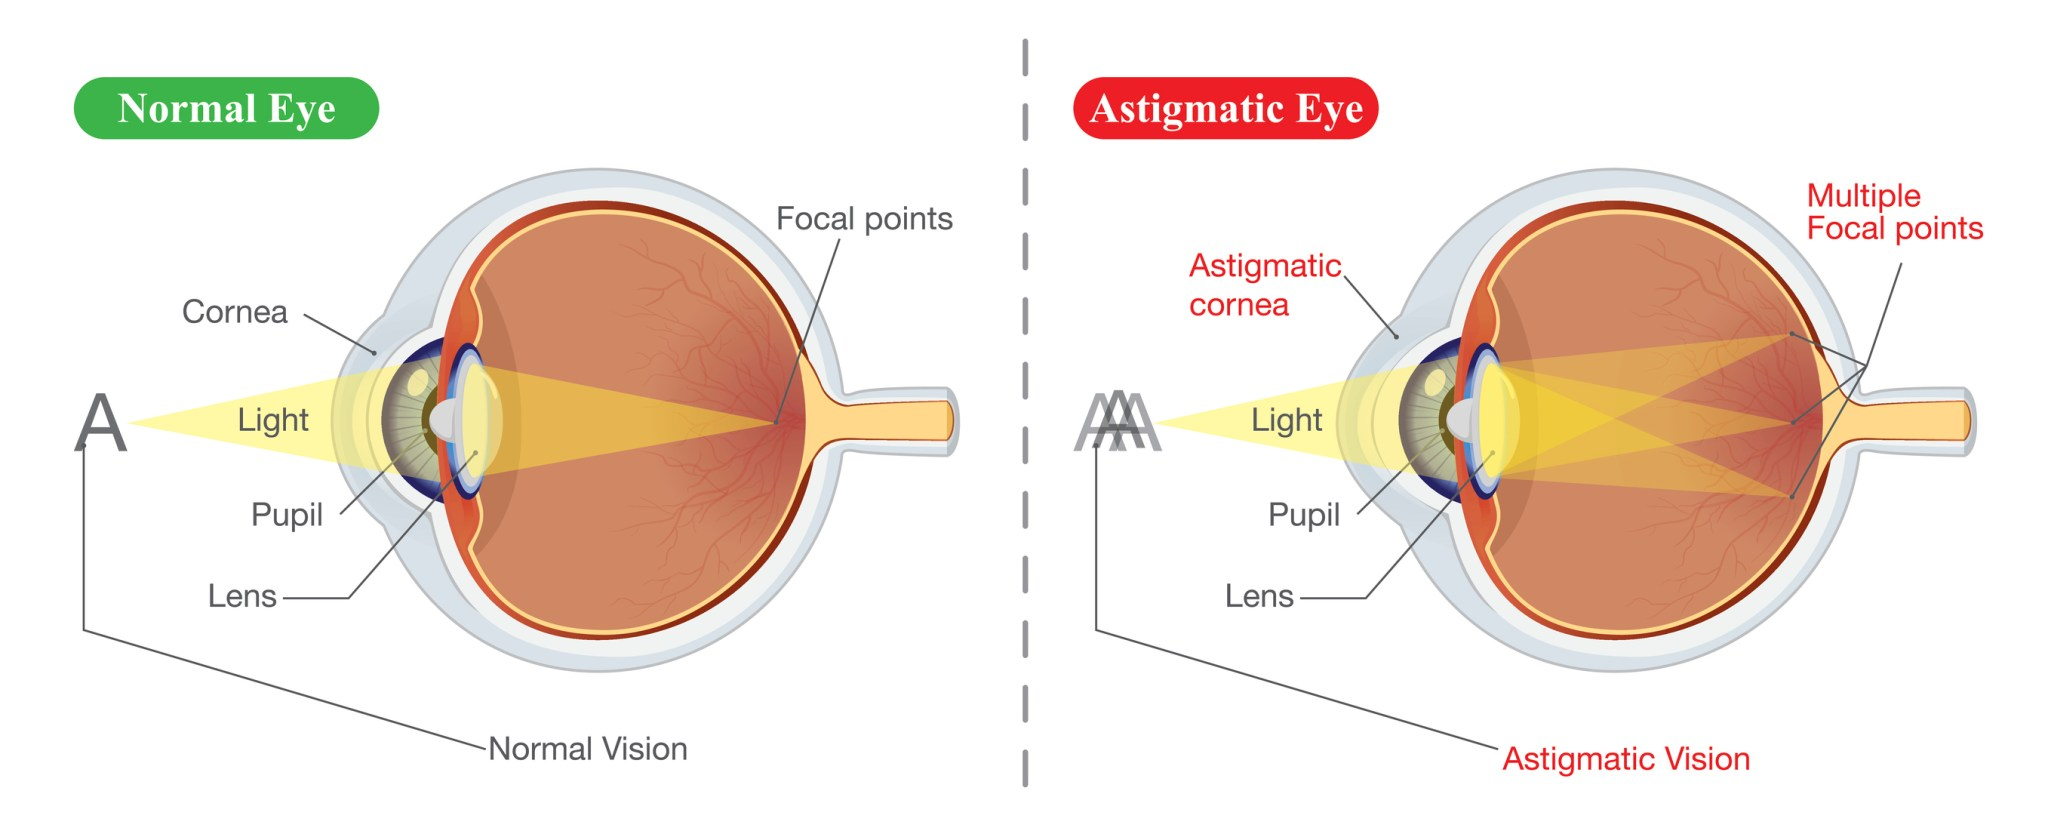 I have astigmatism, so does that mean I'm not suitable for laser eye surgery?